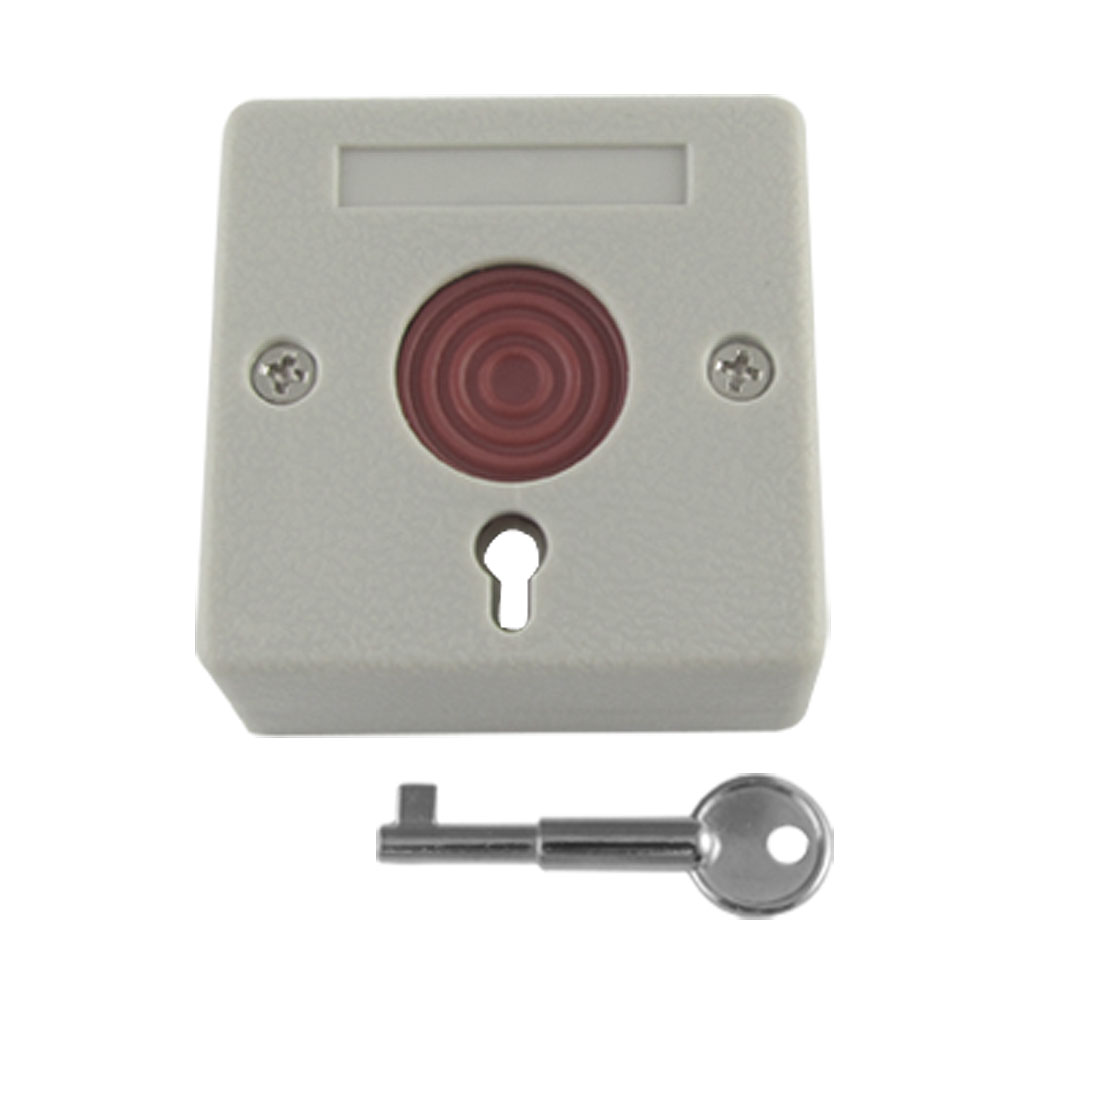 DC 12V Square Home Office Emergency Panic Button Ash-colored